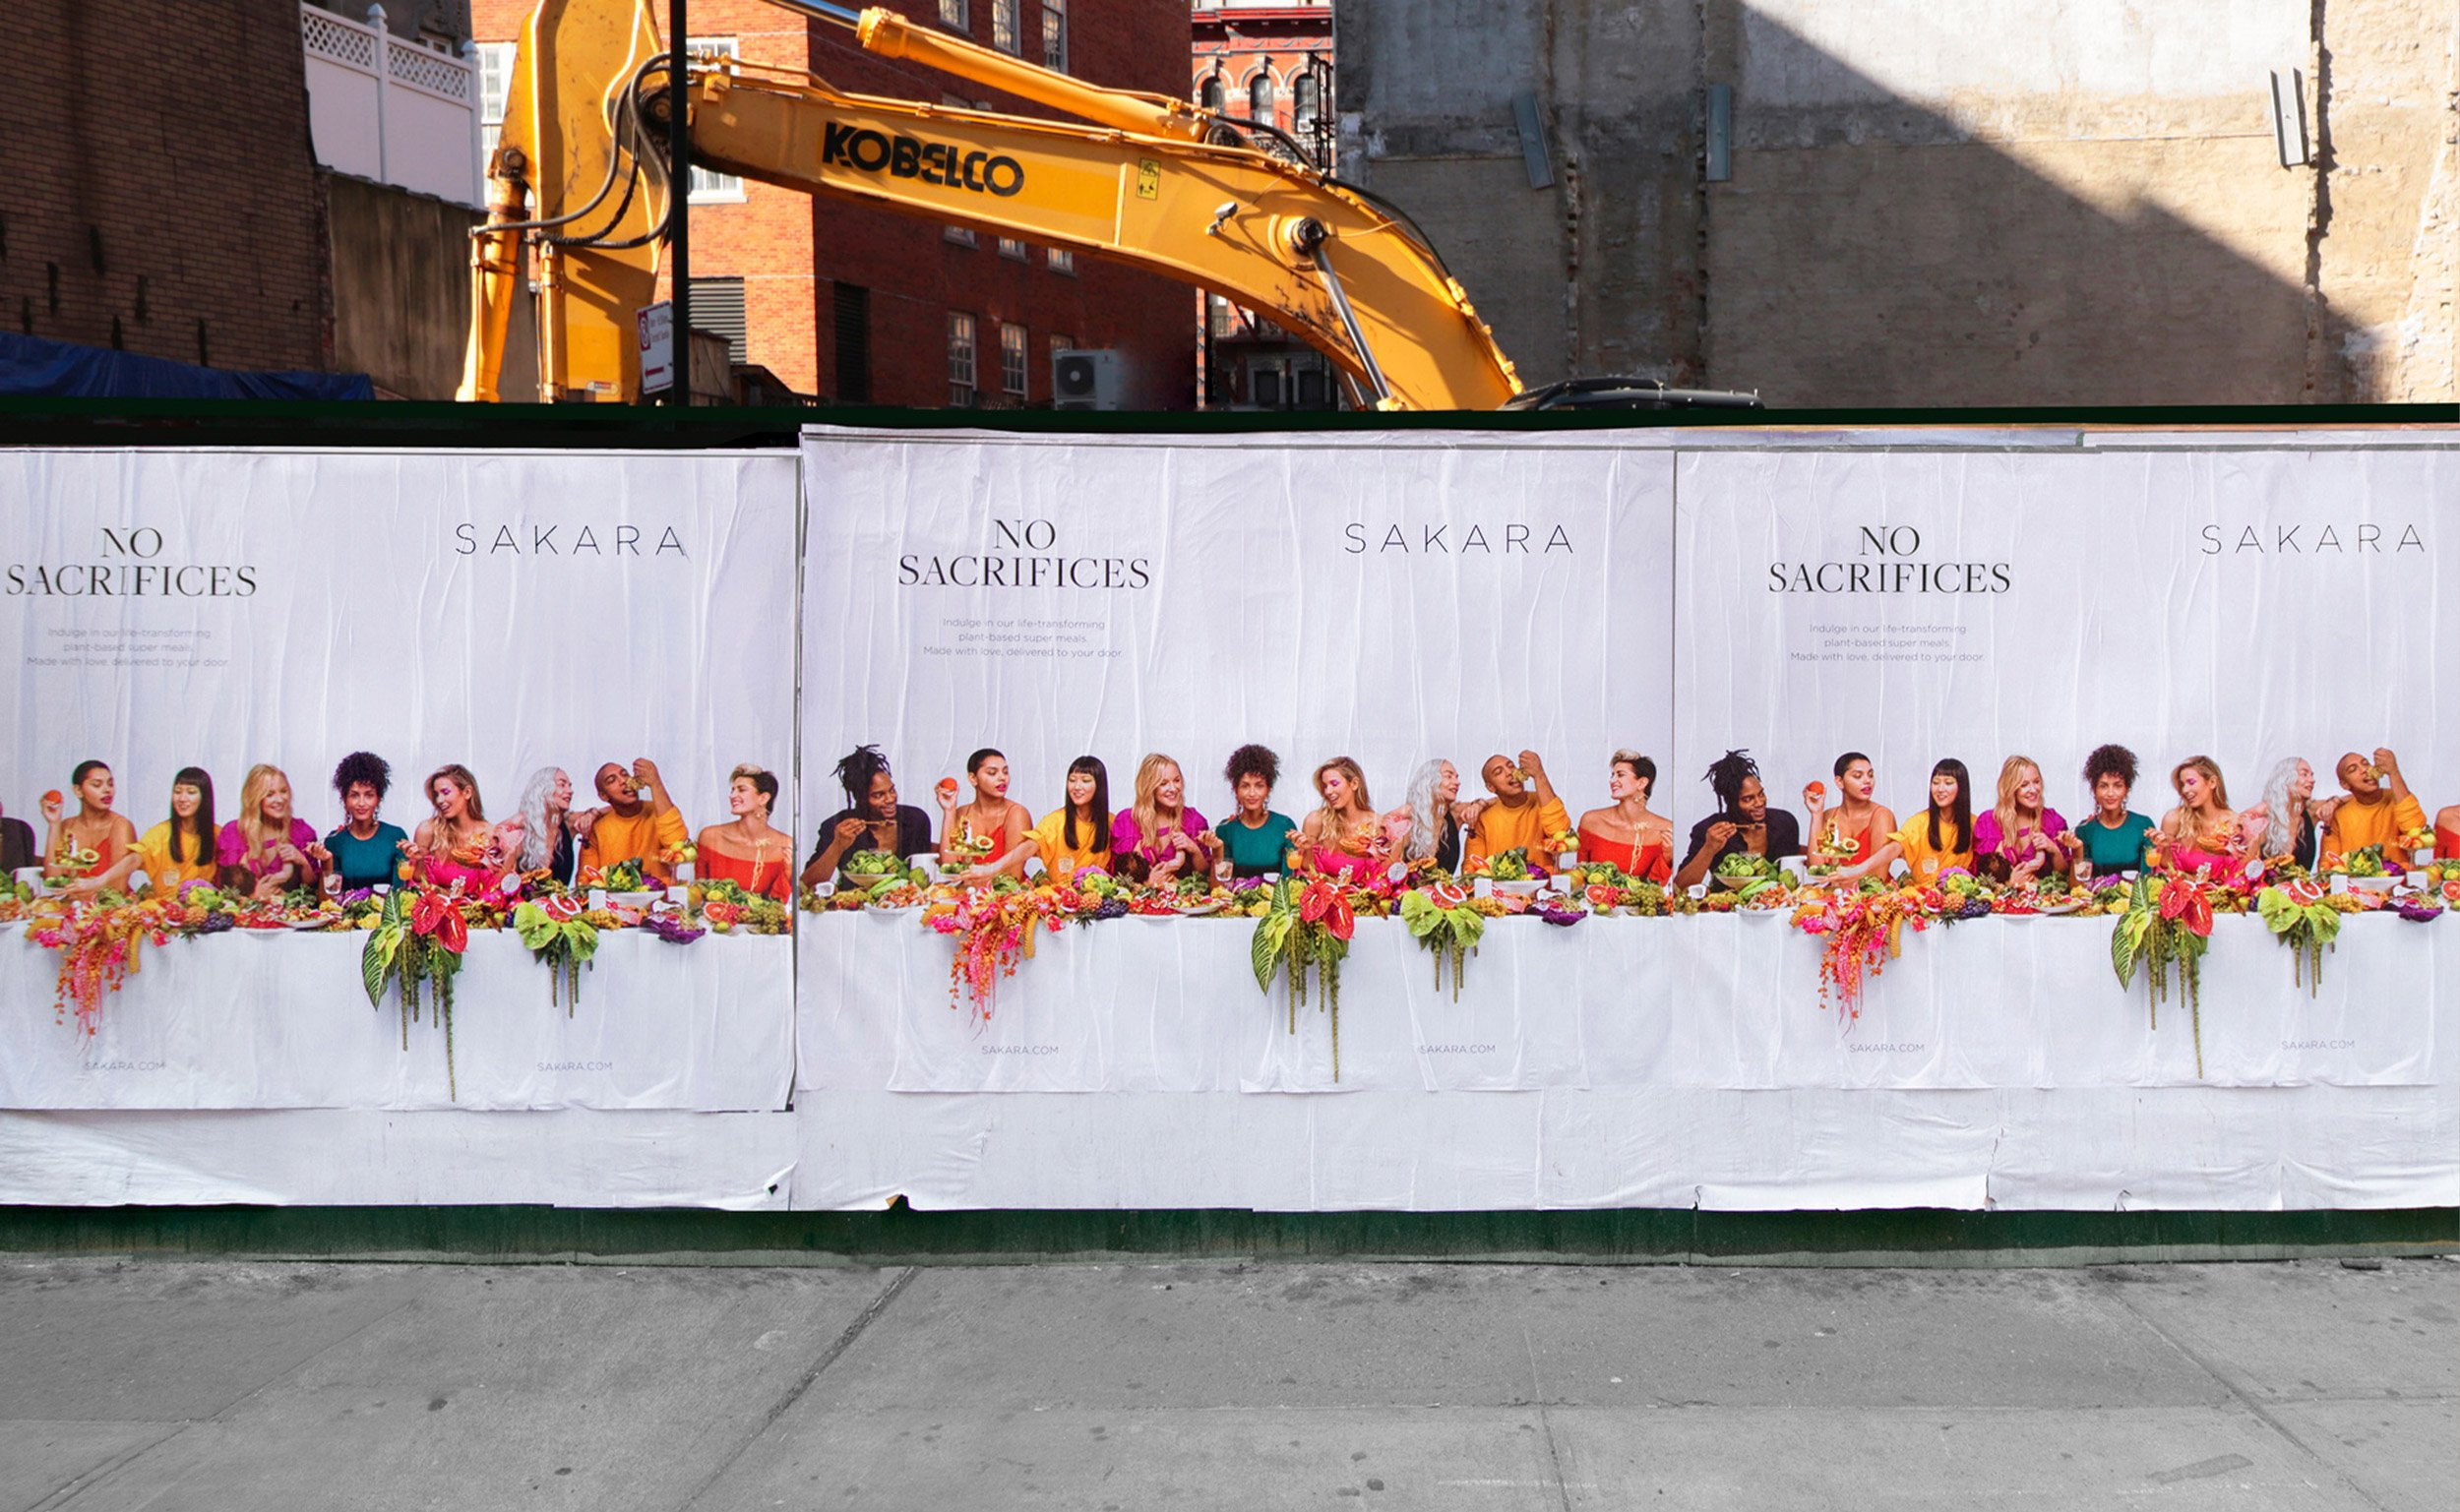 """Sakara """"No Sacrifices"""" campaign wild postings in New York City, Campaign Art direction by RoAndCo"""